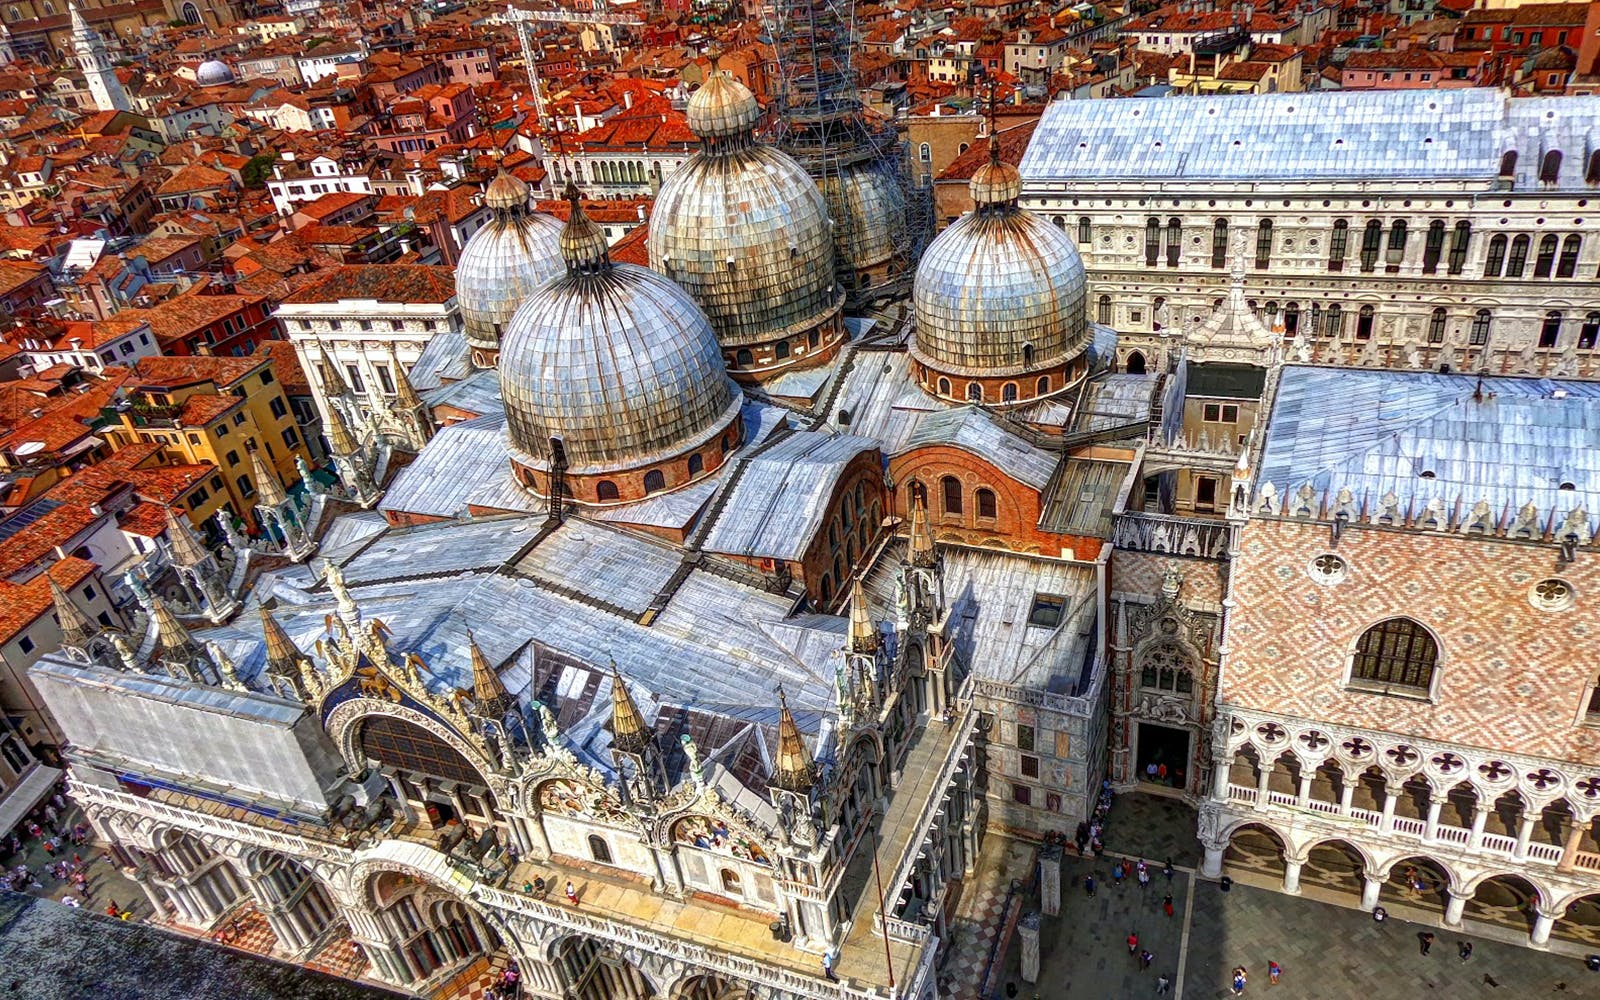 venice walking tour & st. mark's basilica - skip the line-3